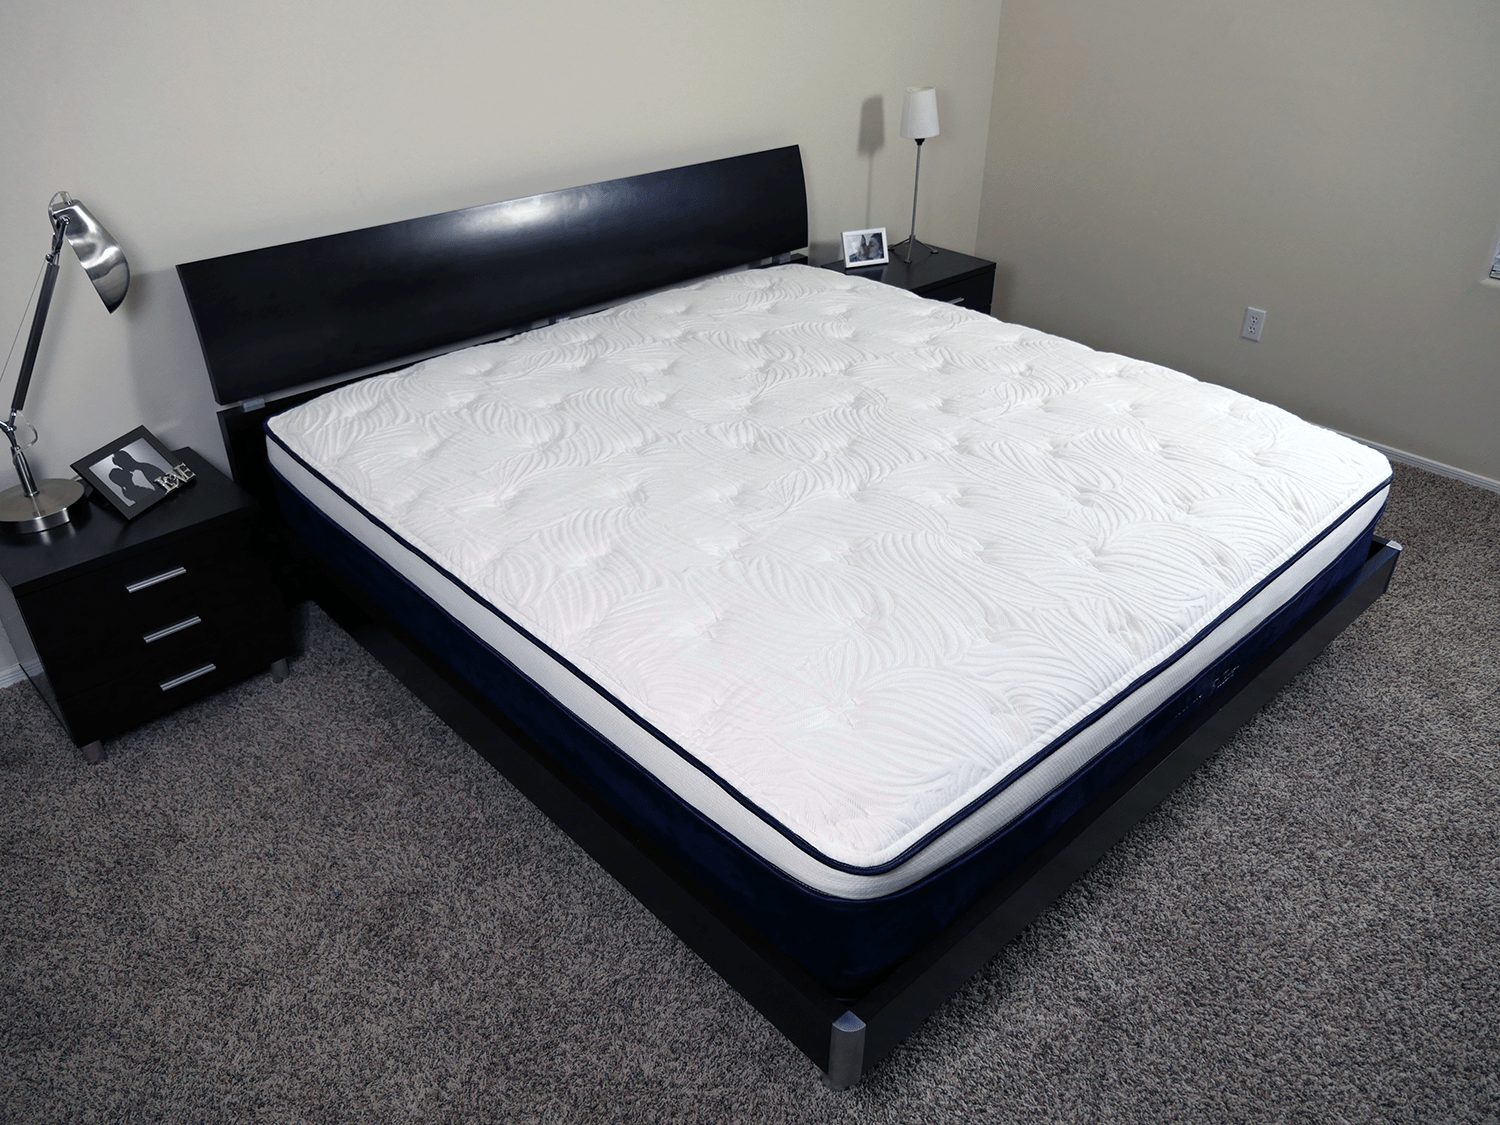 Nest Bedding Alexander Hybrid Mattress Sinkage Tests